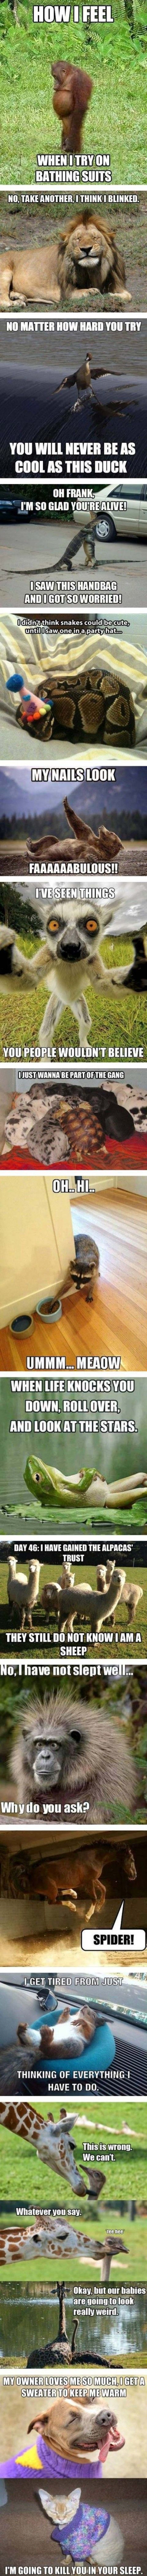 funny pictures with captions 222 (53 pict) | Funny pictures #compartirvideos #funnypictures: